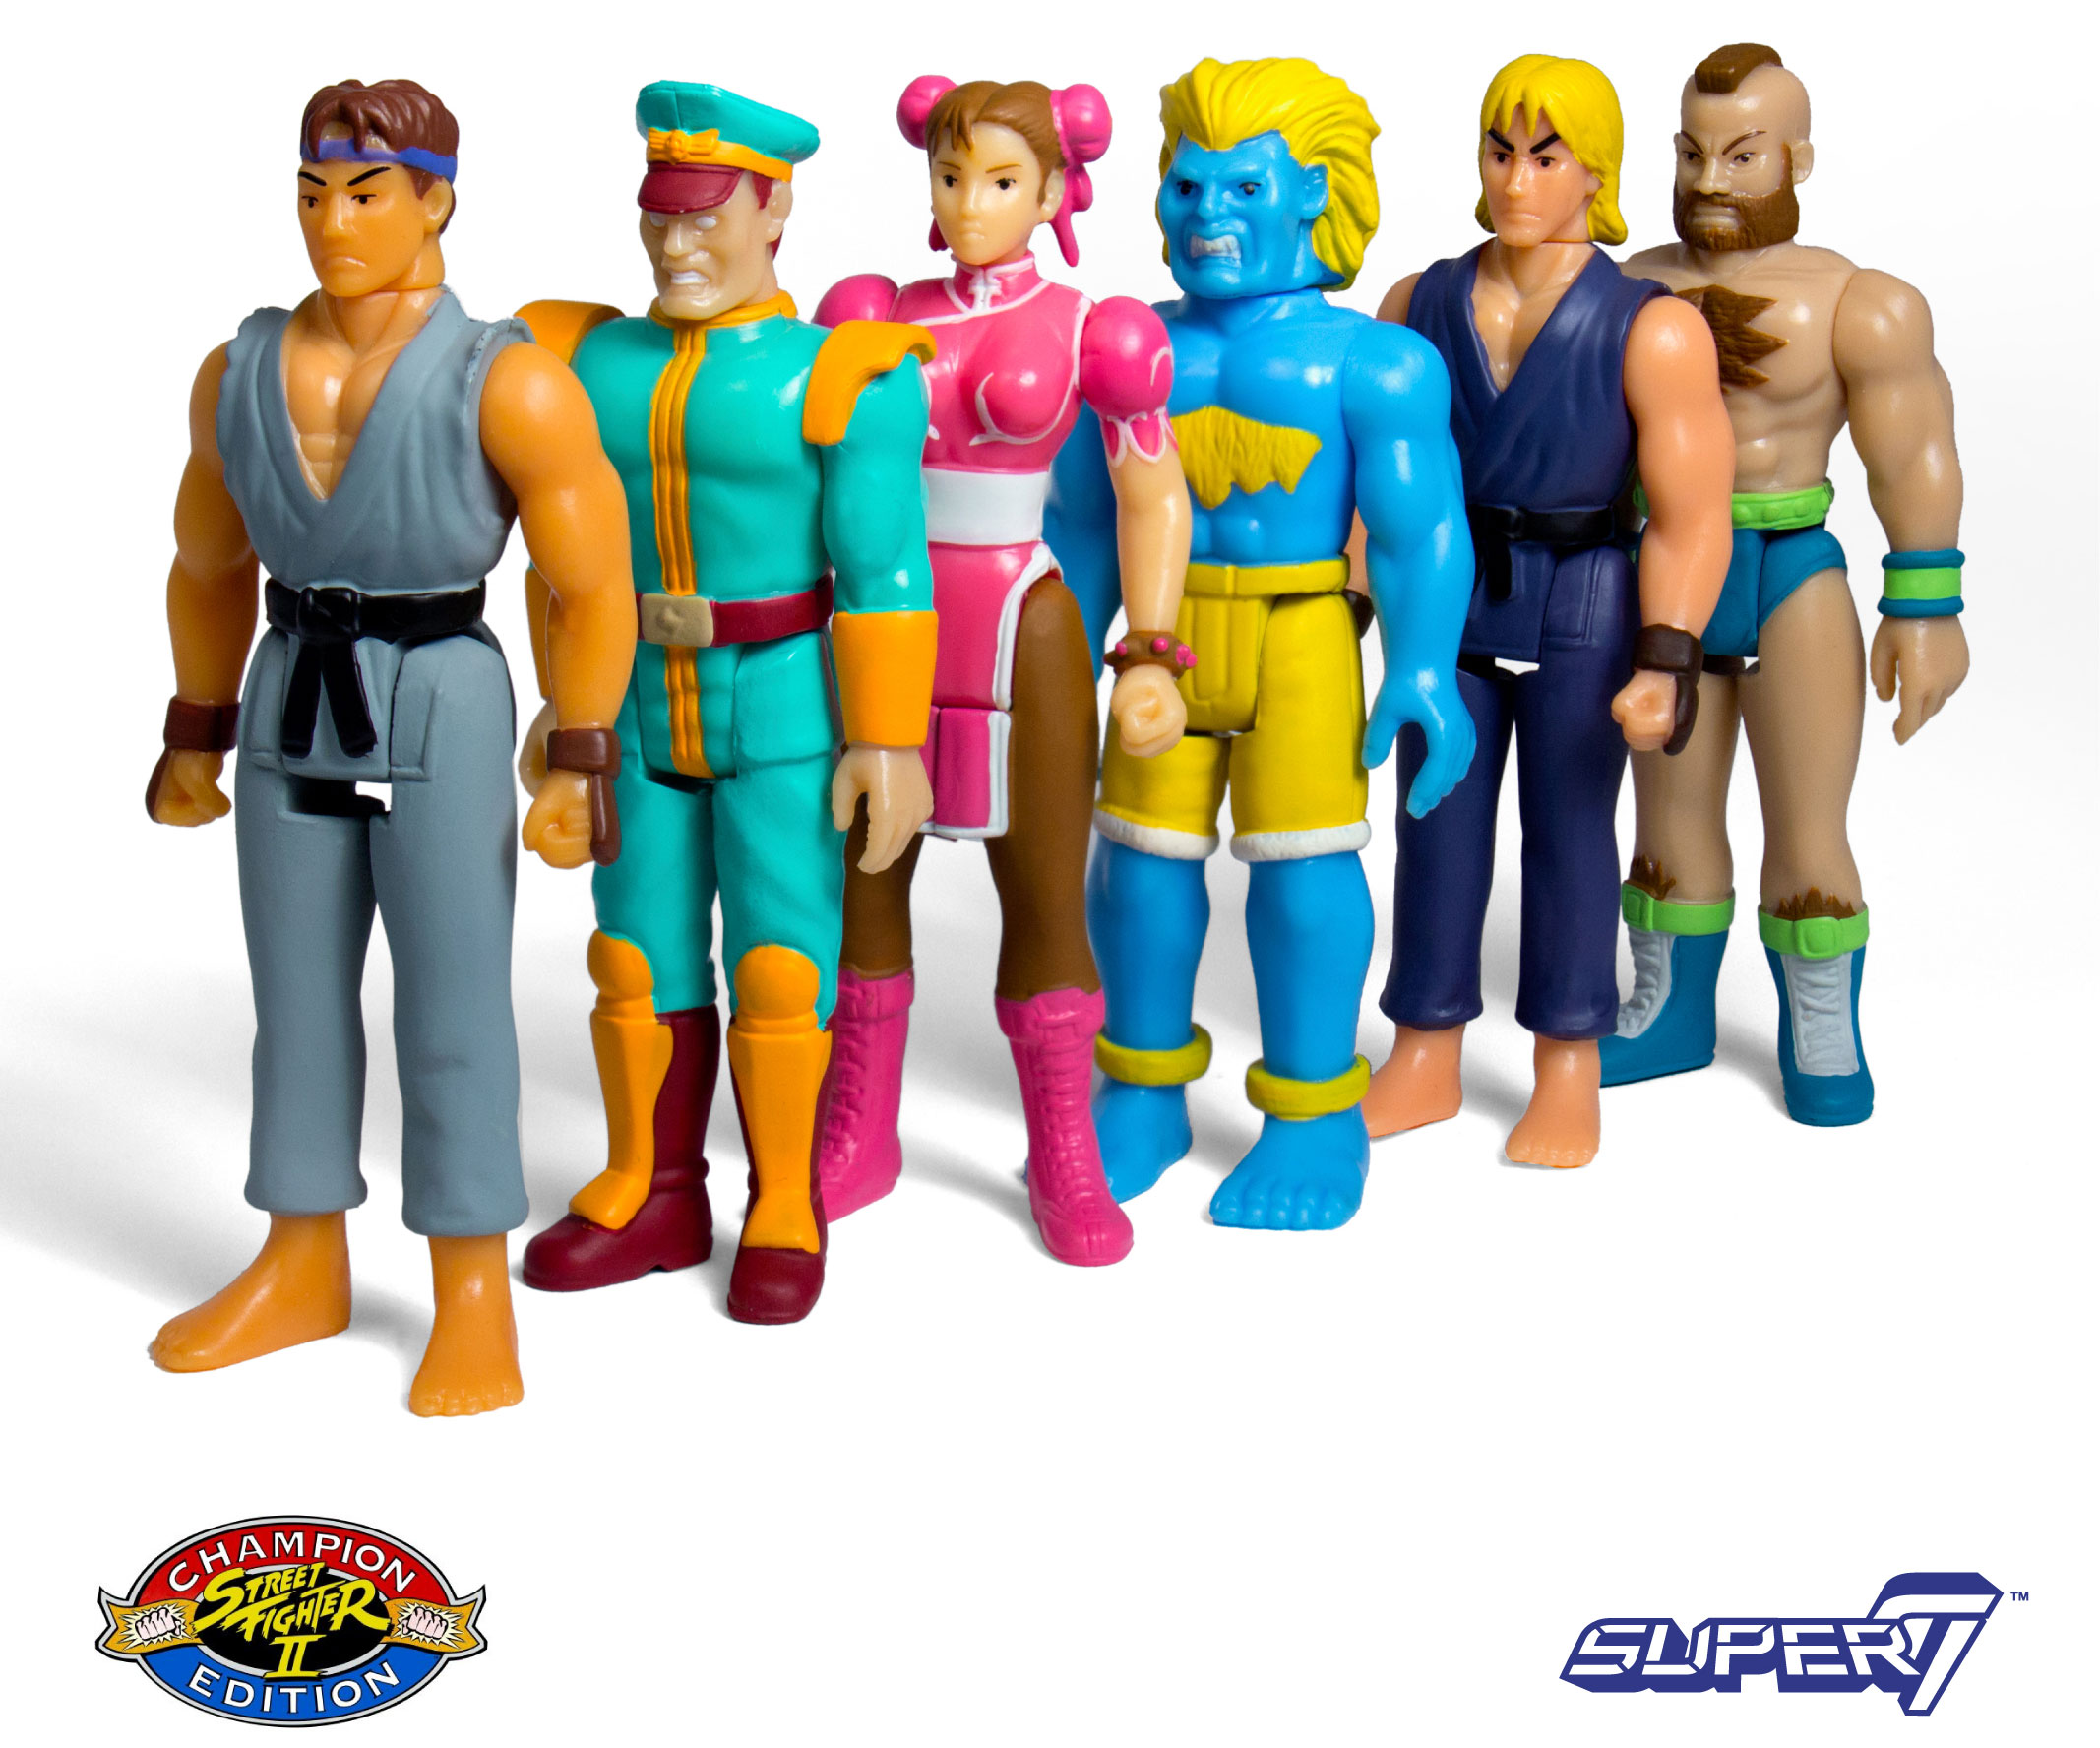 street-fighter-II-champion-edition-action-figures-super7